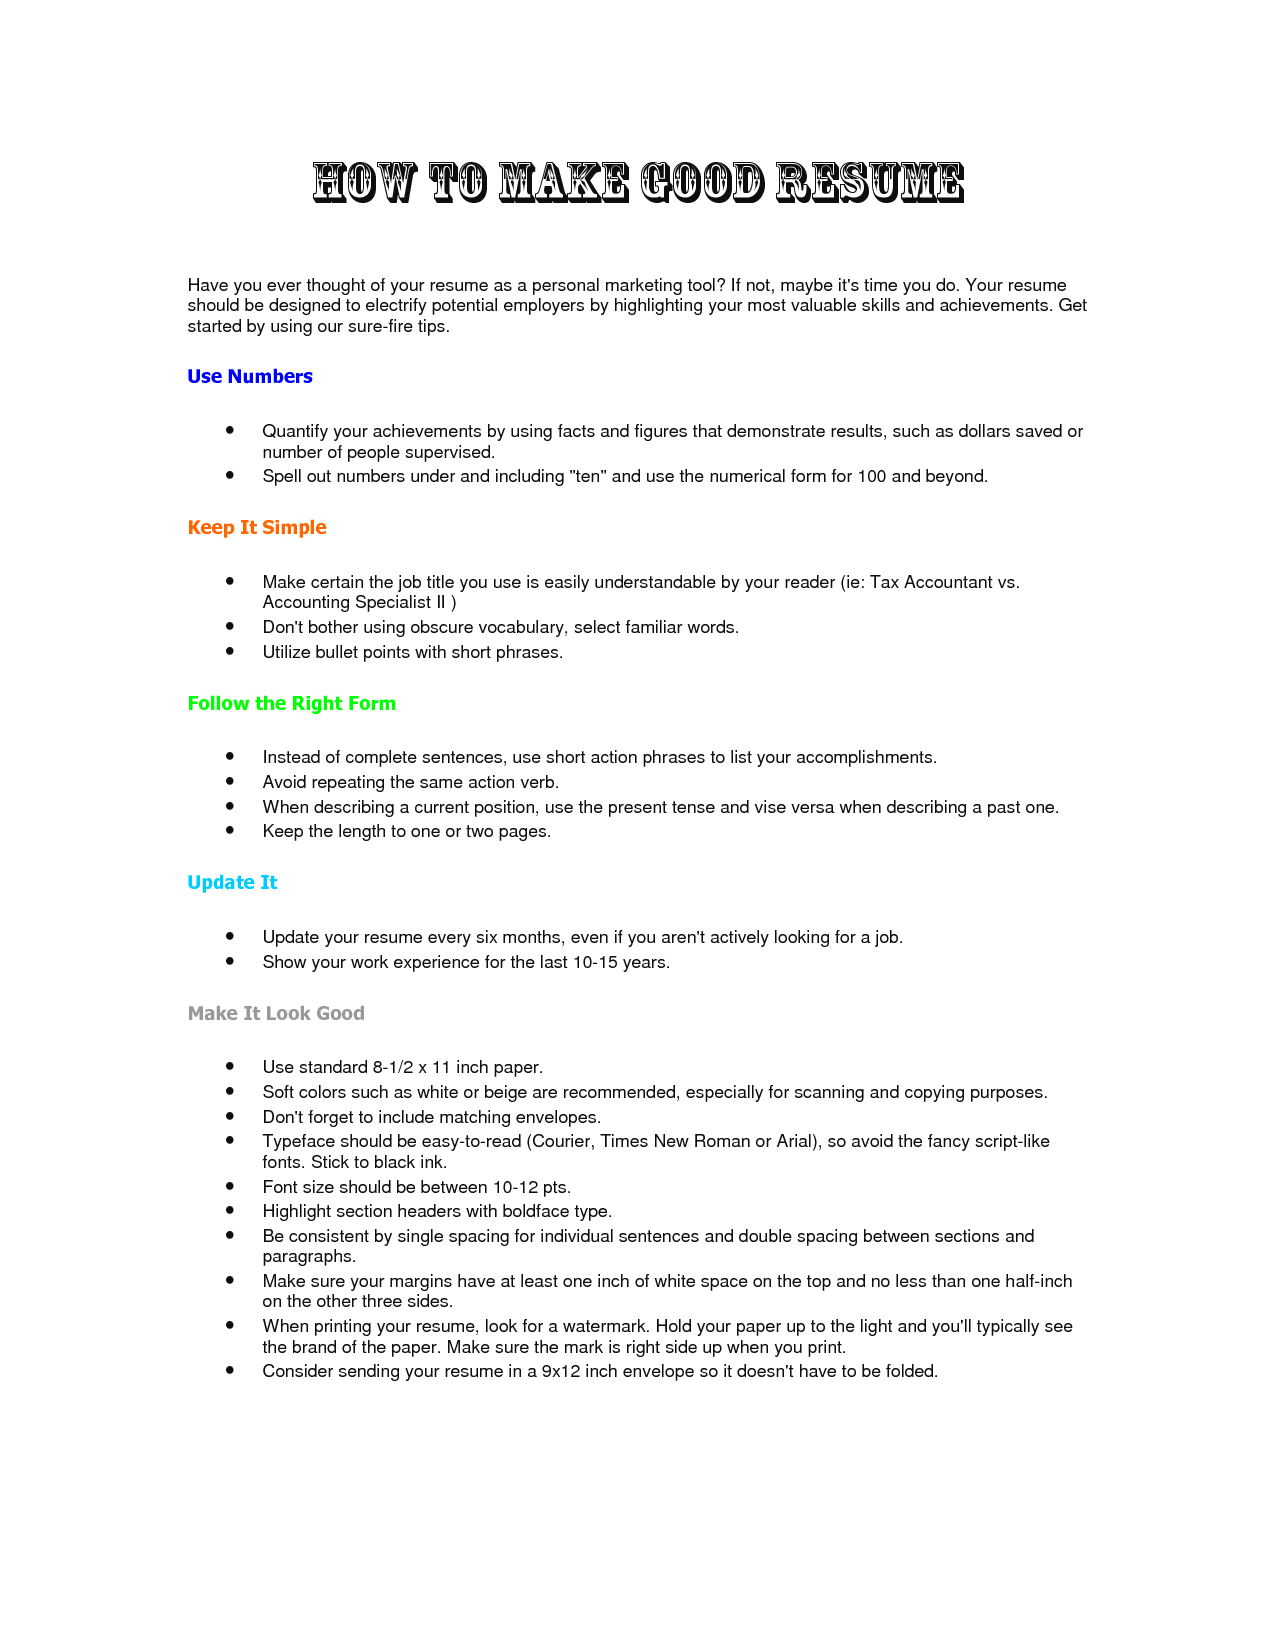 how to prepare a proper resume tk how to prepare a proper resume